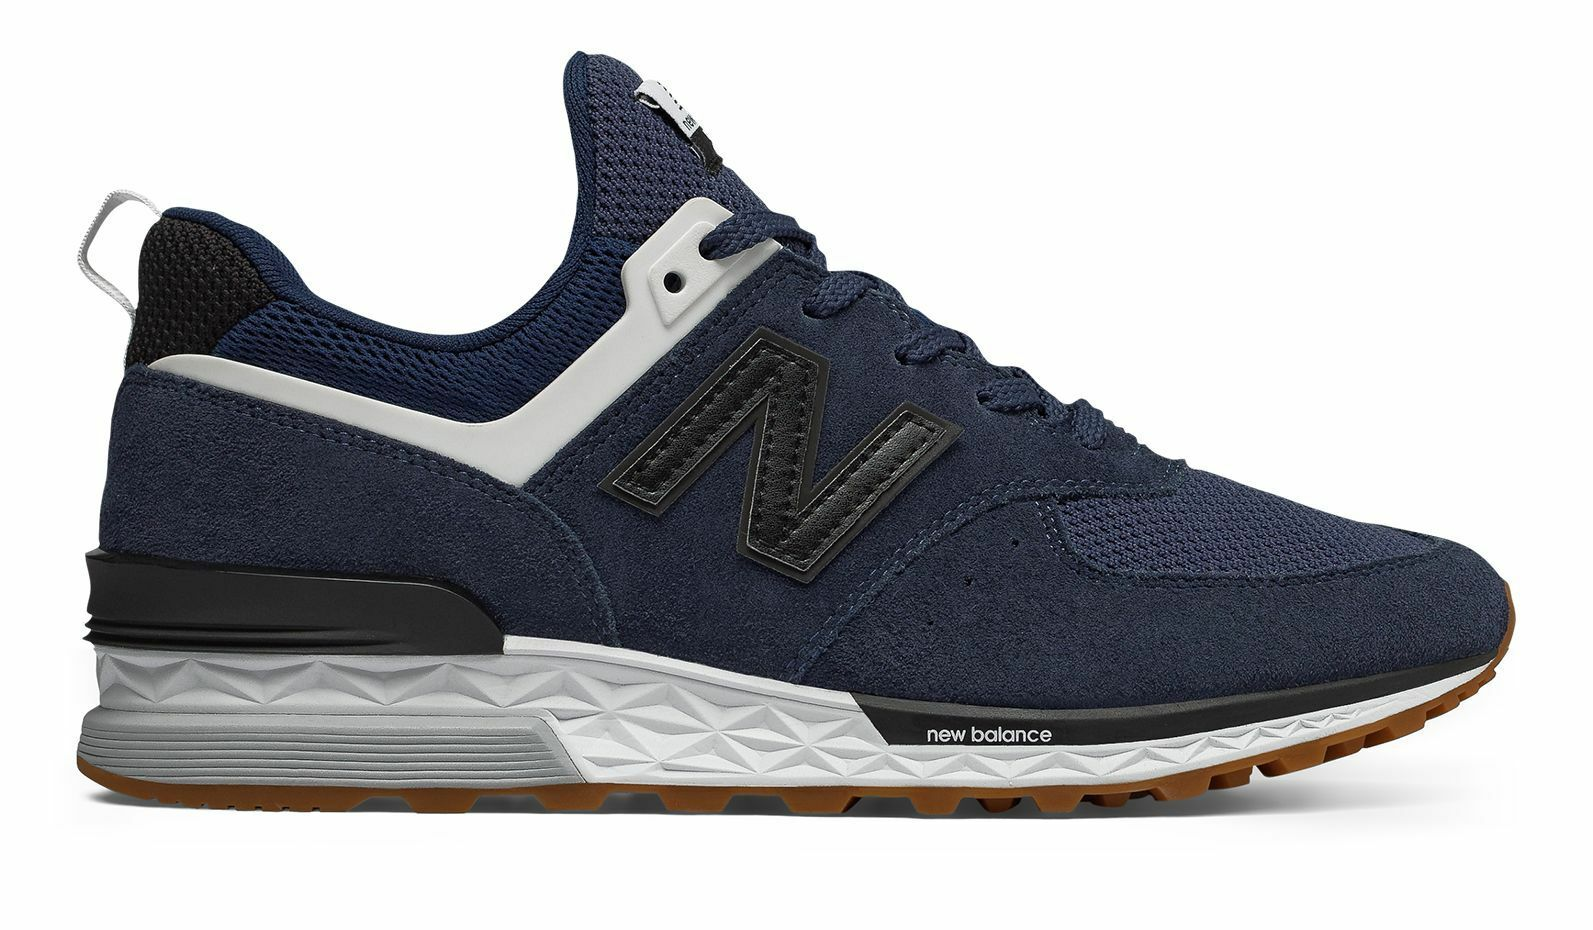 New Balance Homme 2018 Sport Chaussures Navy with Noir